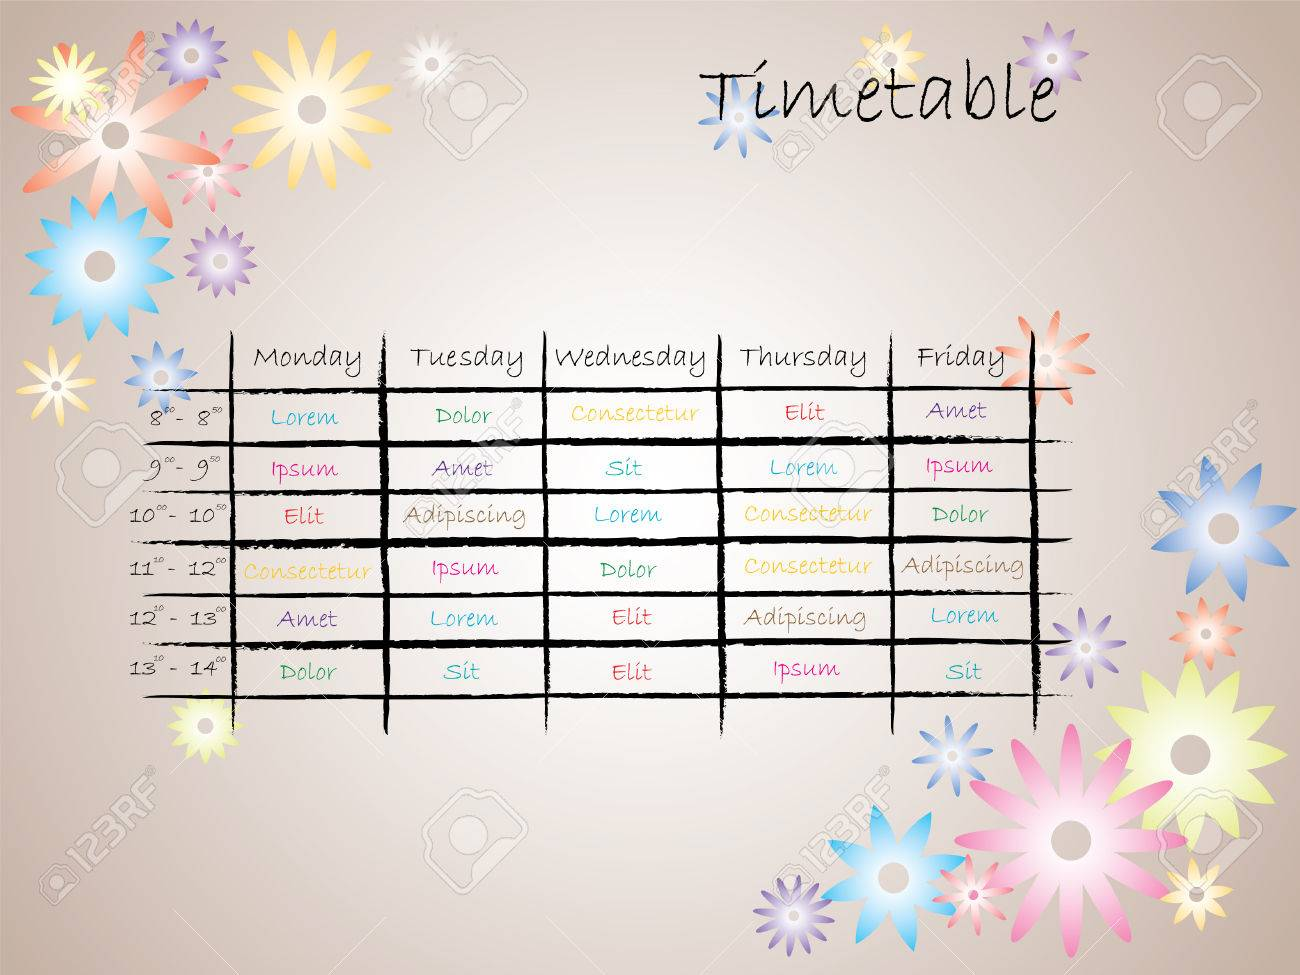 revision schedule template